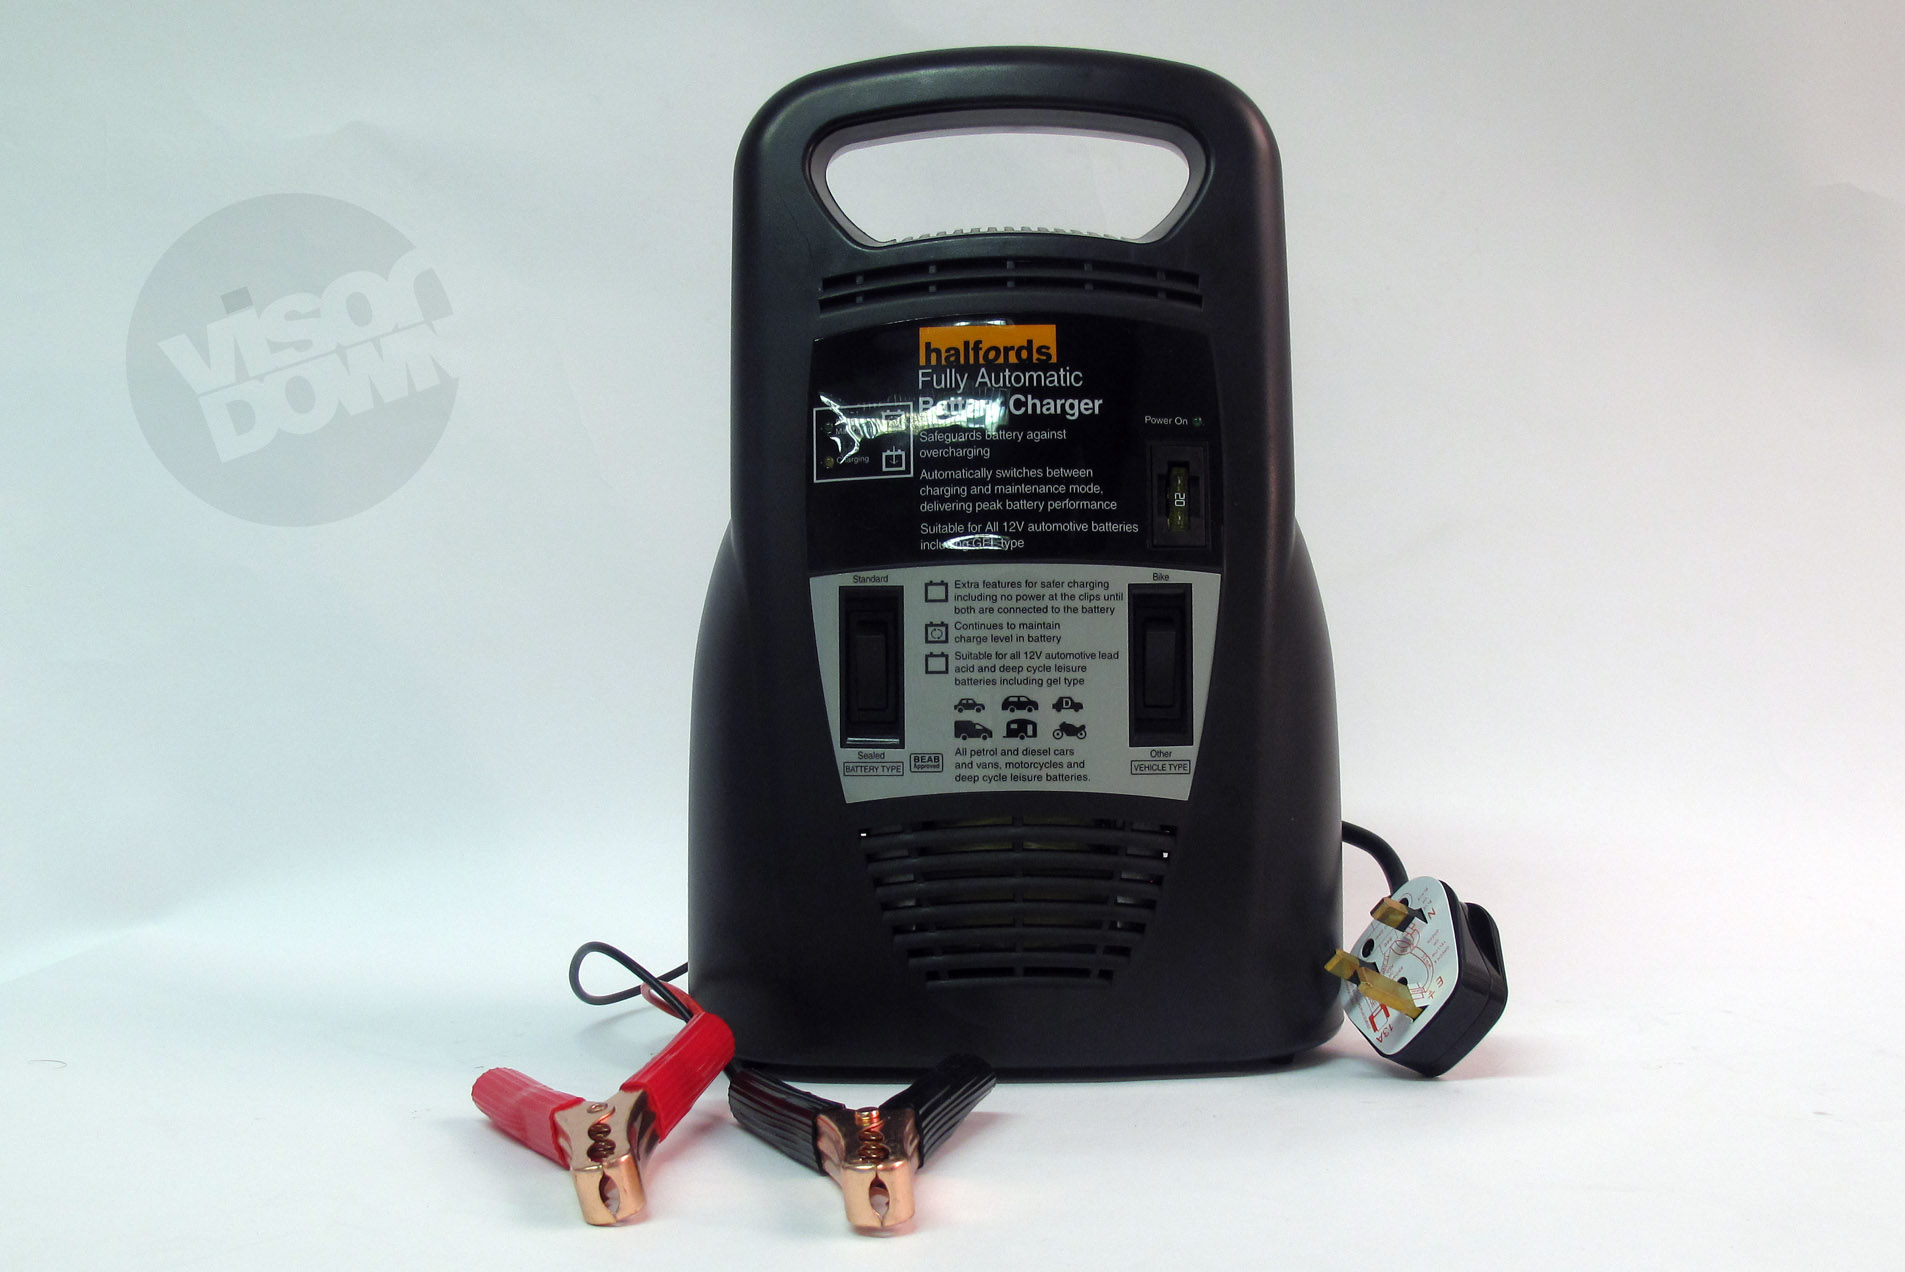 7 Motorcycle Battery Chargers Page 4 Visordown